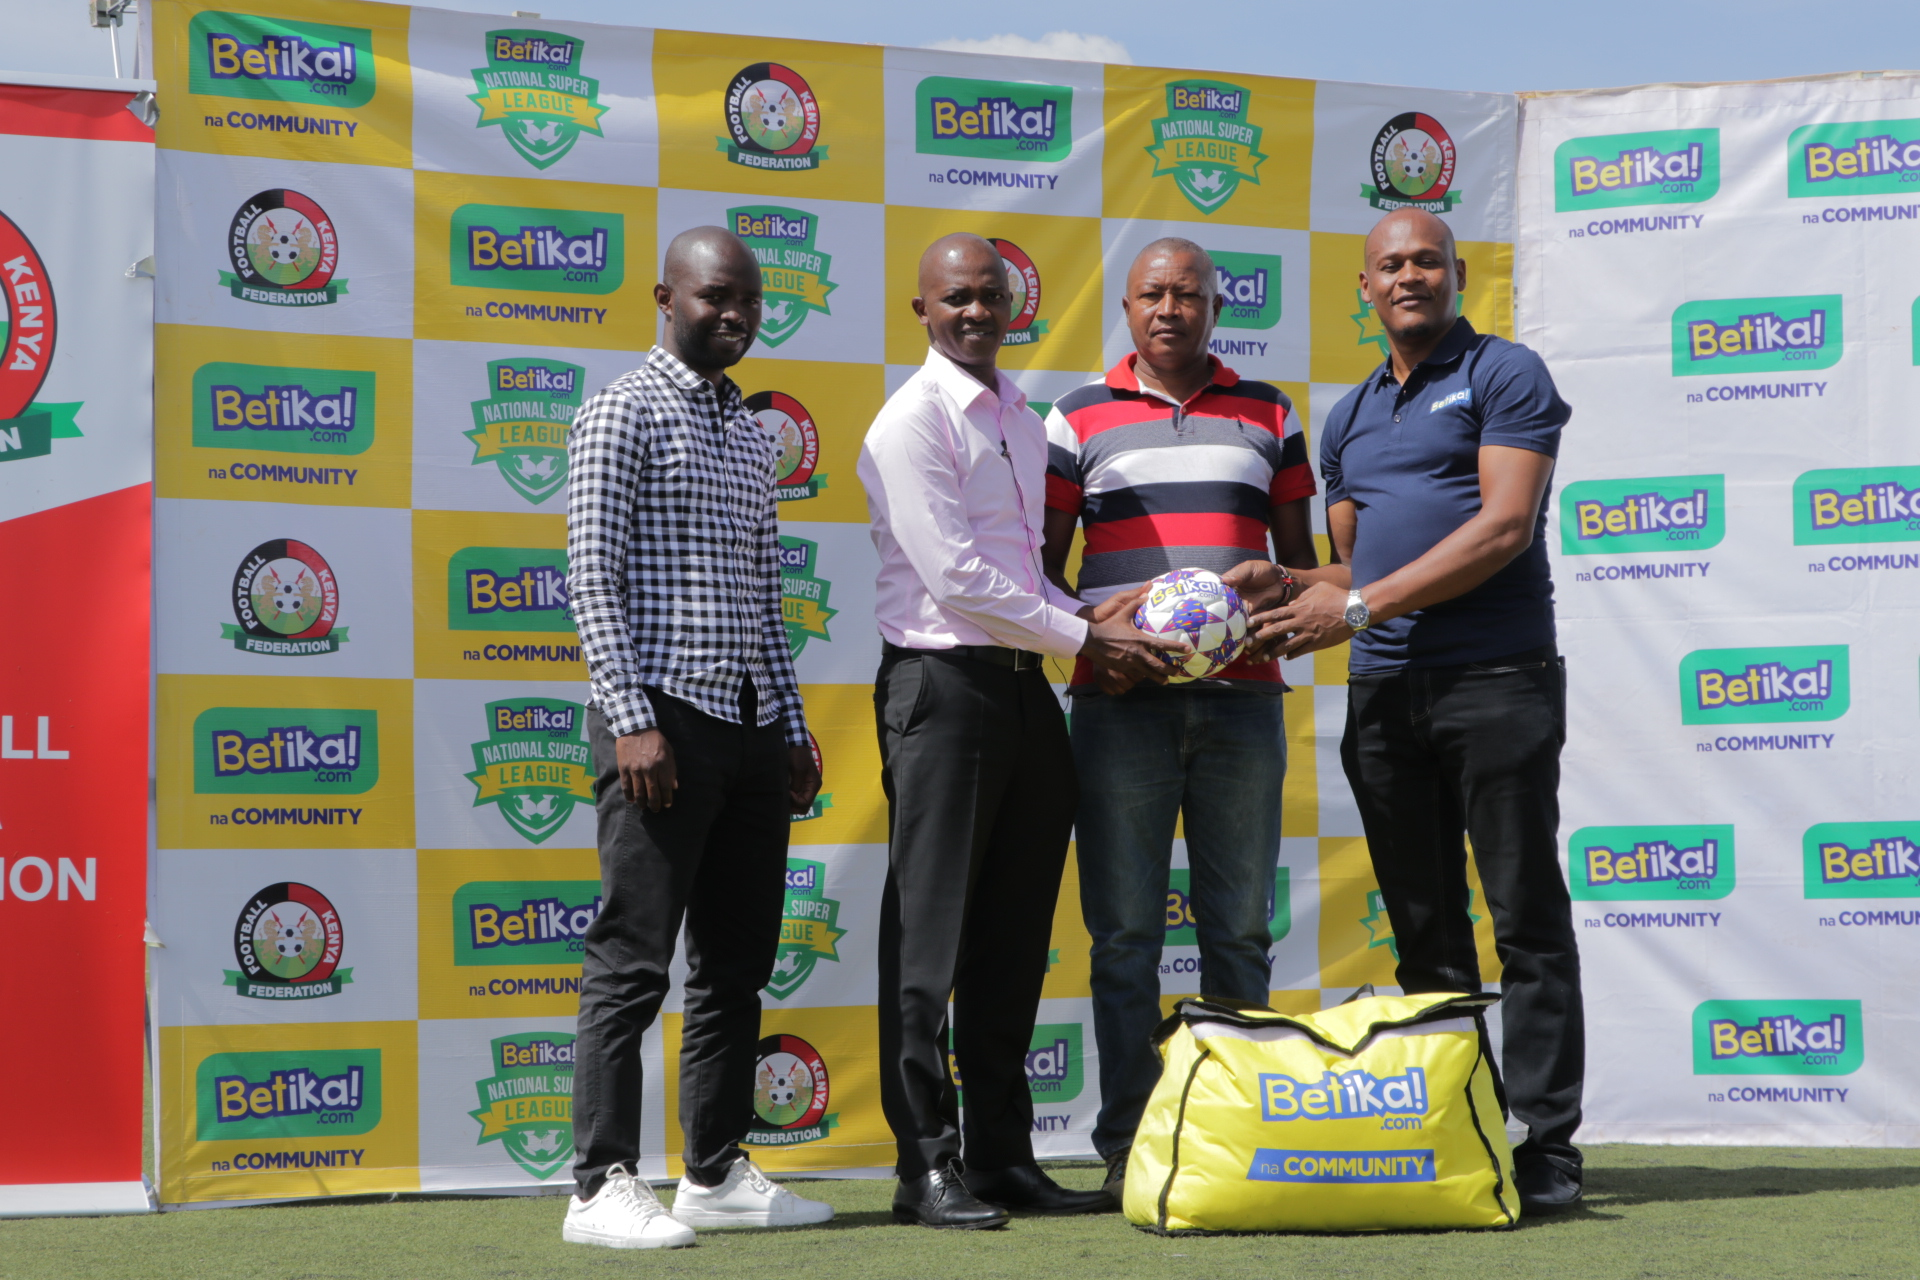 The Betika National Super League gets a surprise Kes. 2 million boost from the gaming giant!